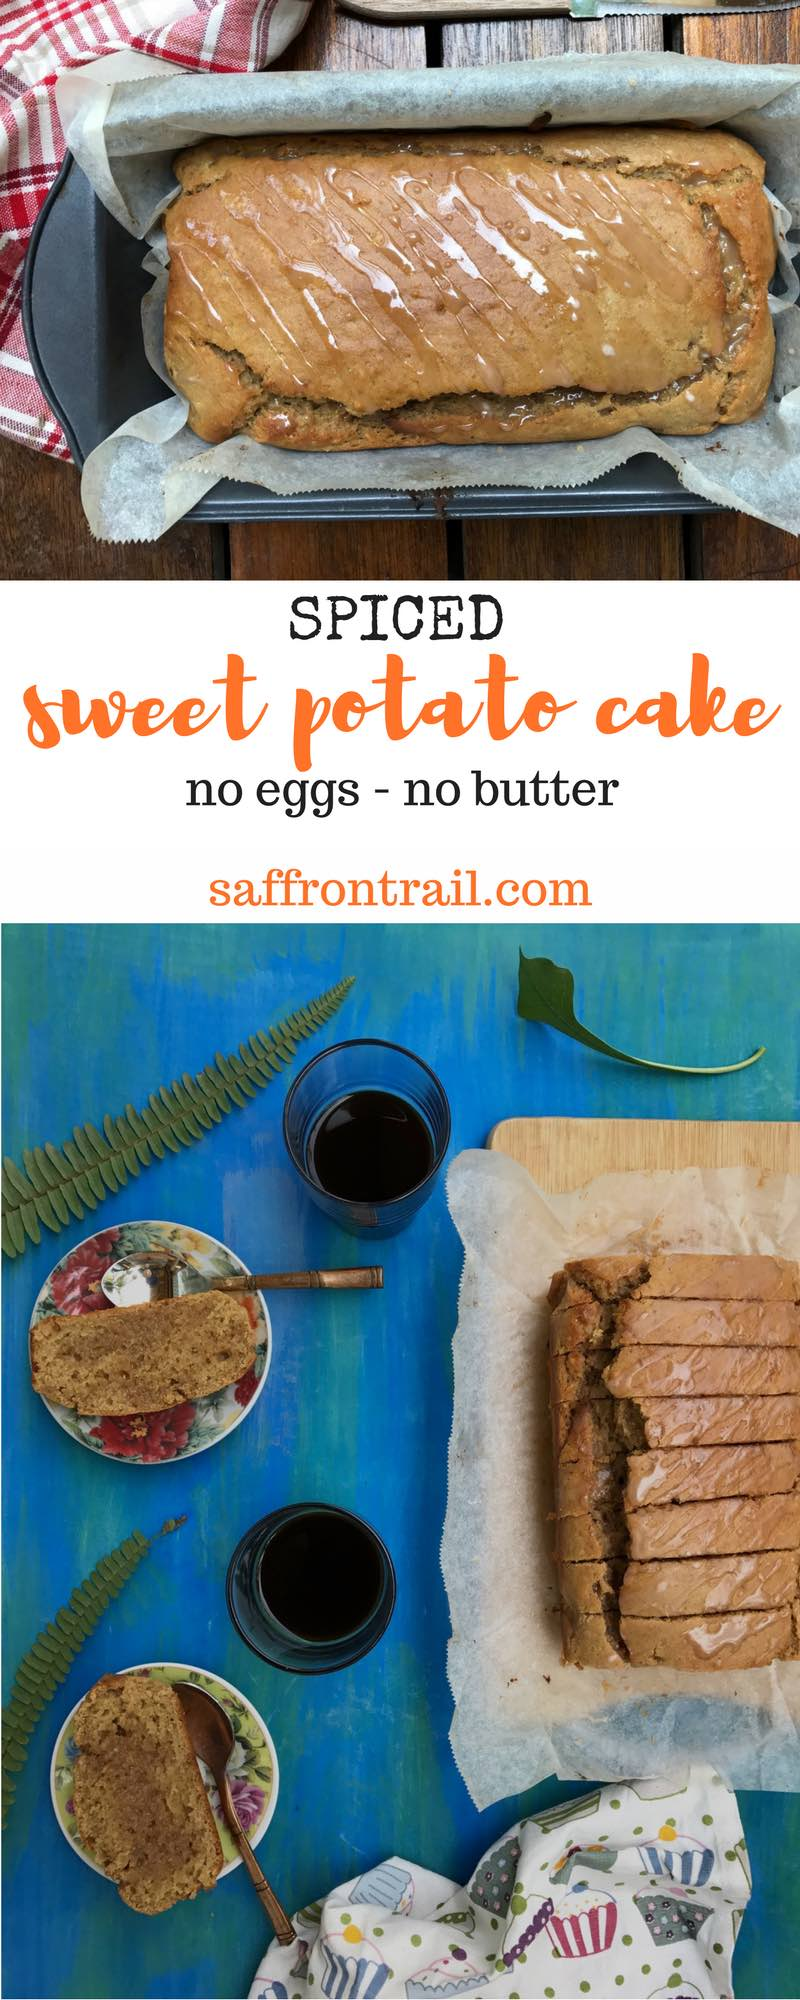 Recipe for a gently spiced, eggless sweet potato cake made in a loaf tin - perfect with that cup of tea or coffee - Moist and delicious